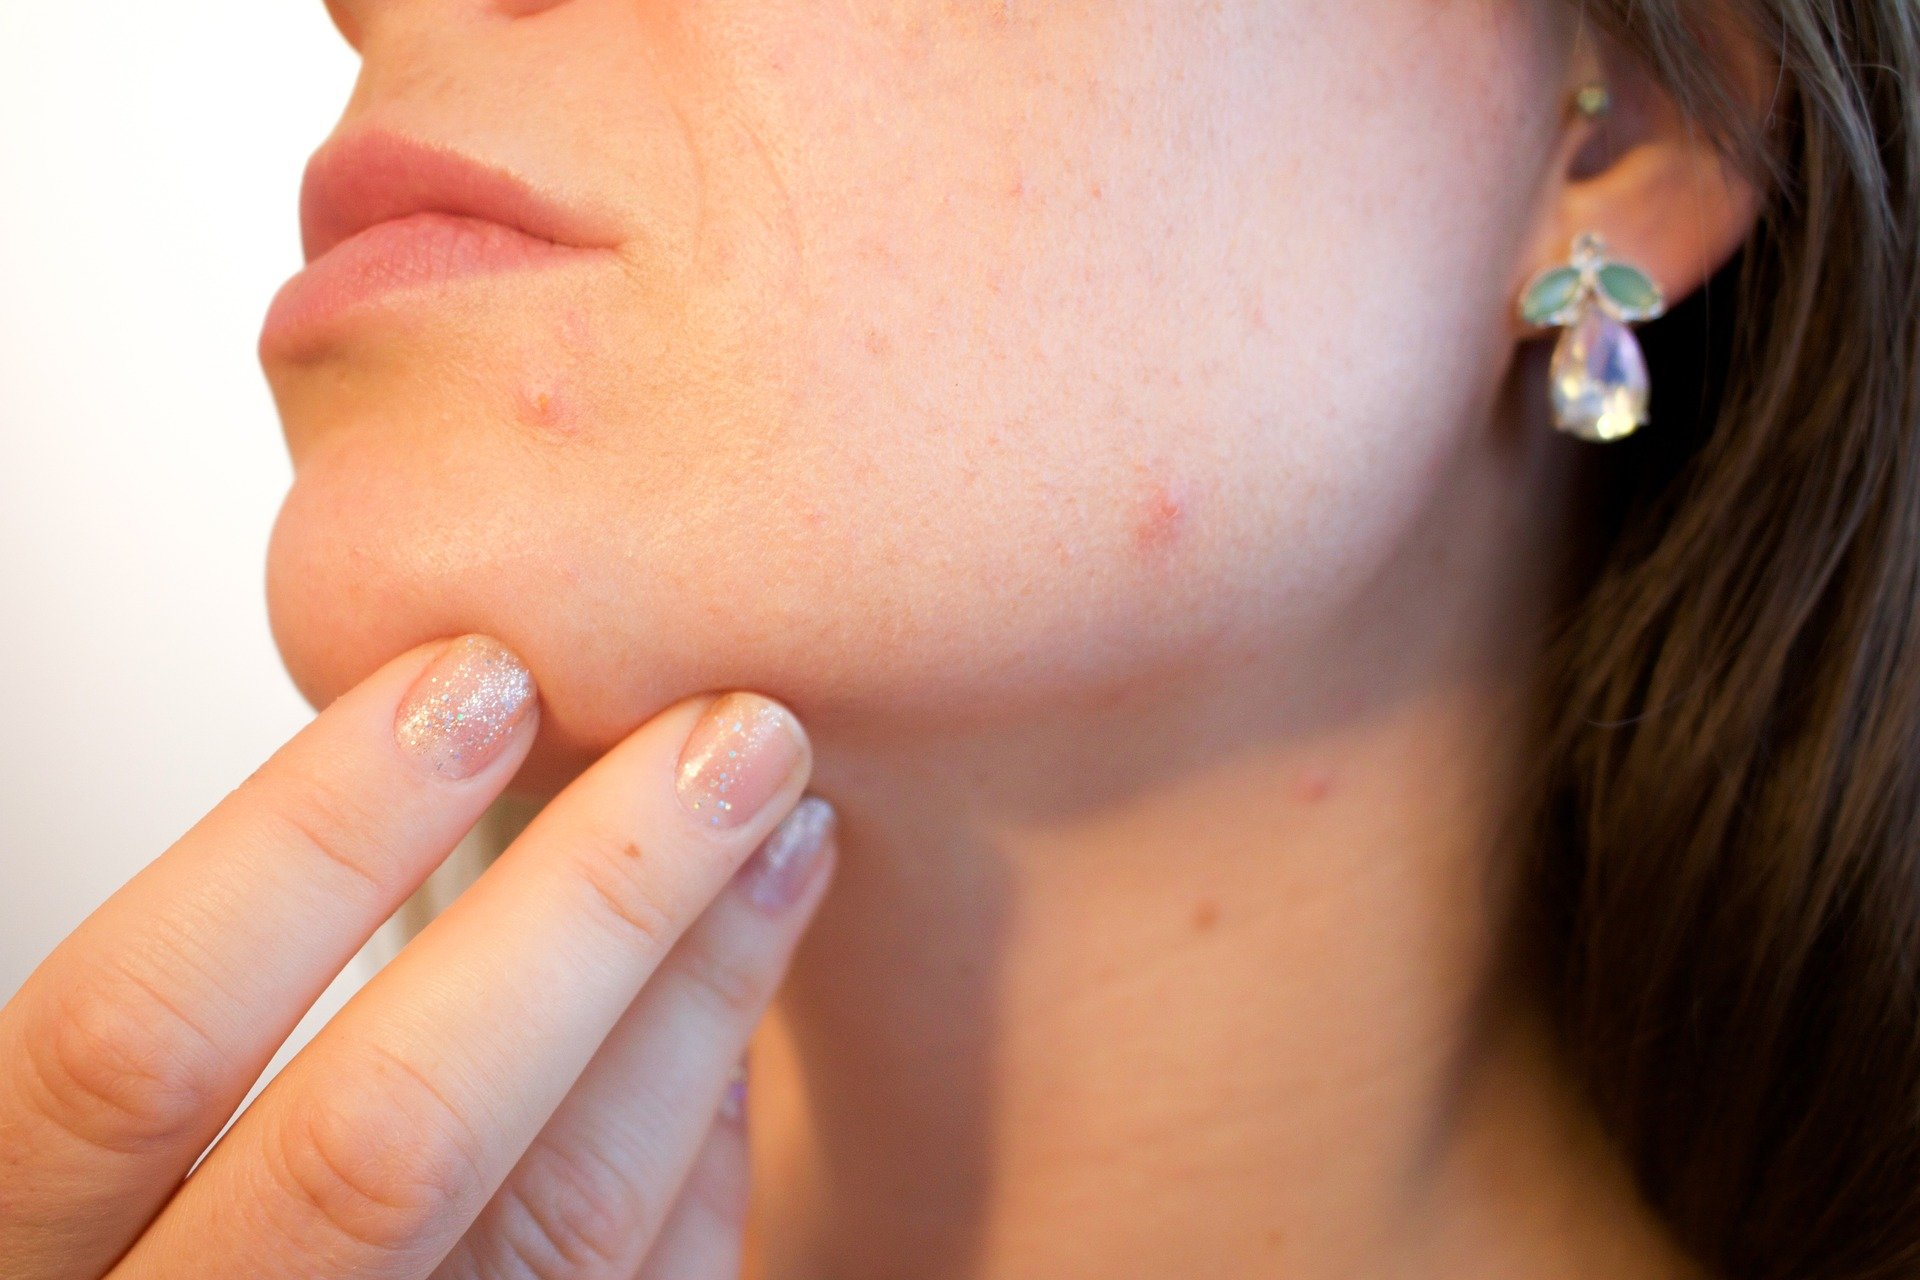 Not all acne is equal: Scientists reveal strains of C. acnes that promote skin health